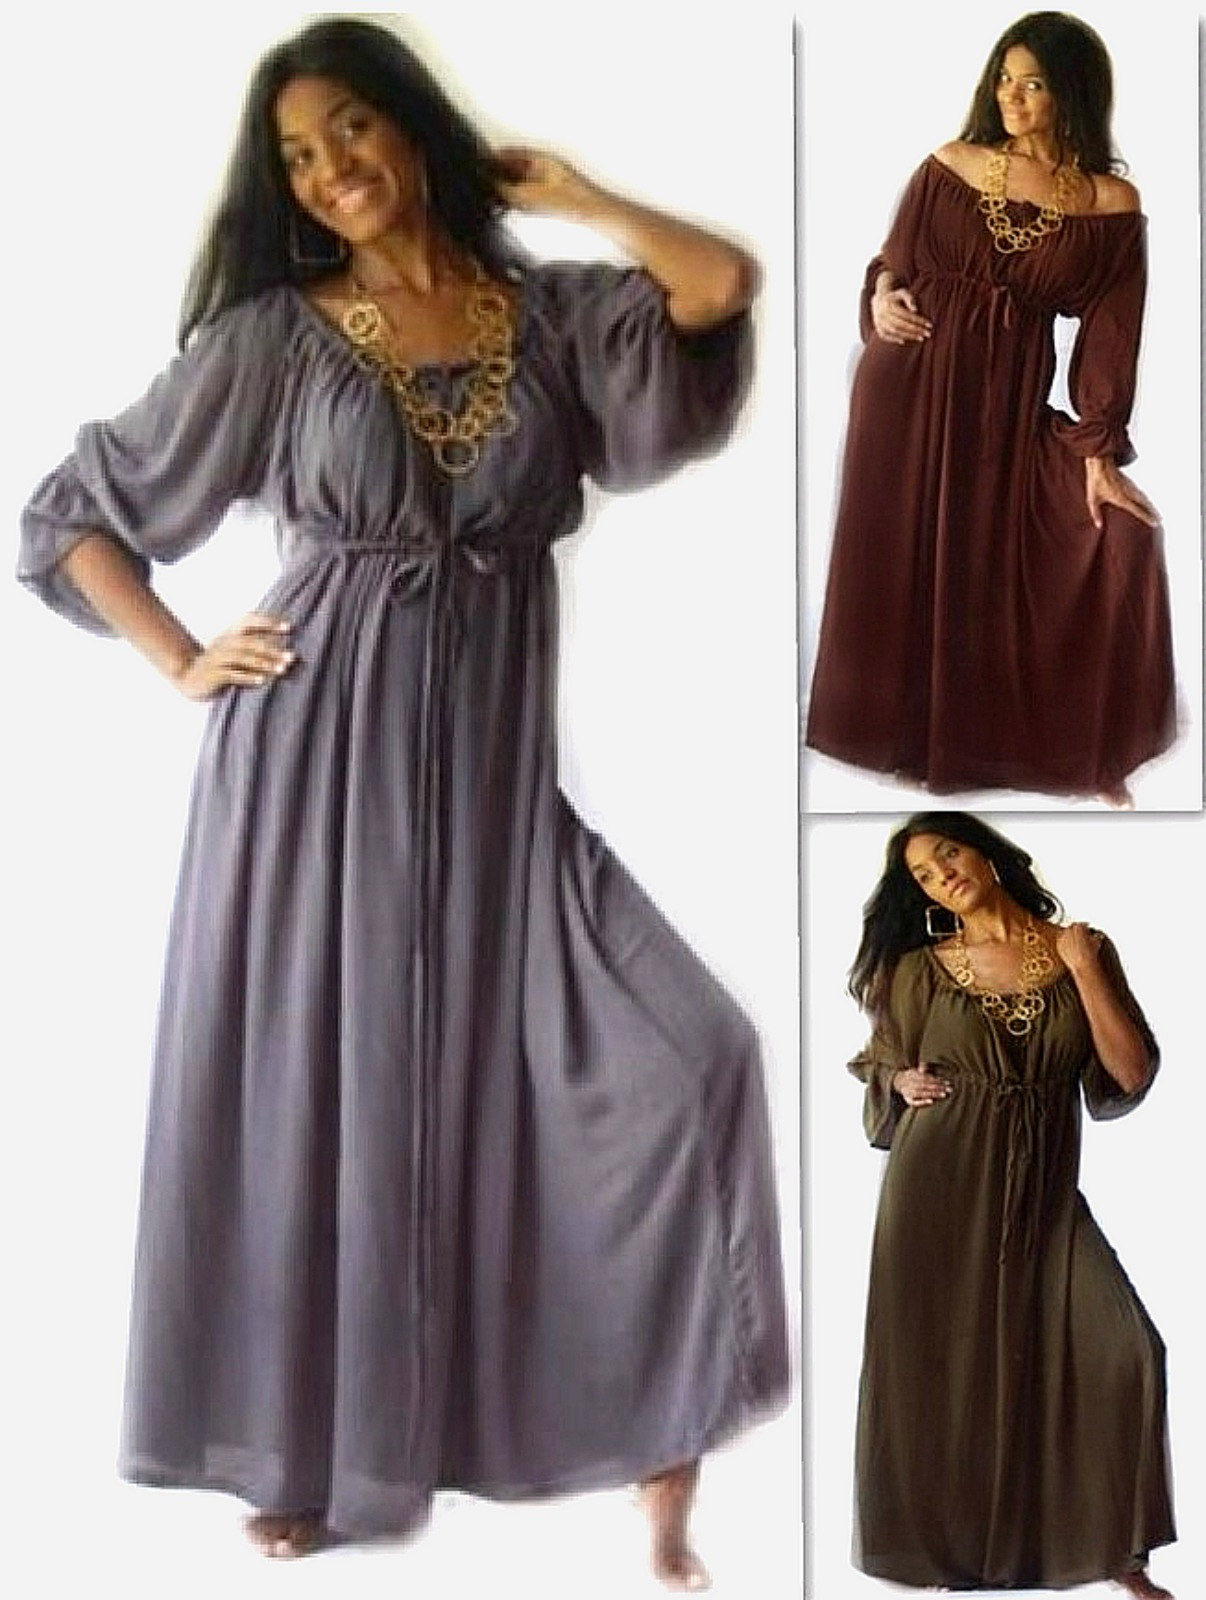 peasant dress - up to 70% off. Well, darn. This item just sold out. Select notify me & we'll tell you when it's back in stock.